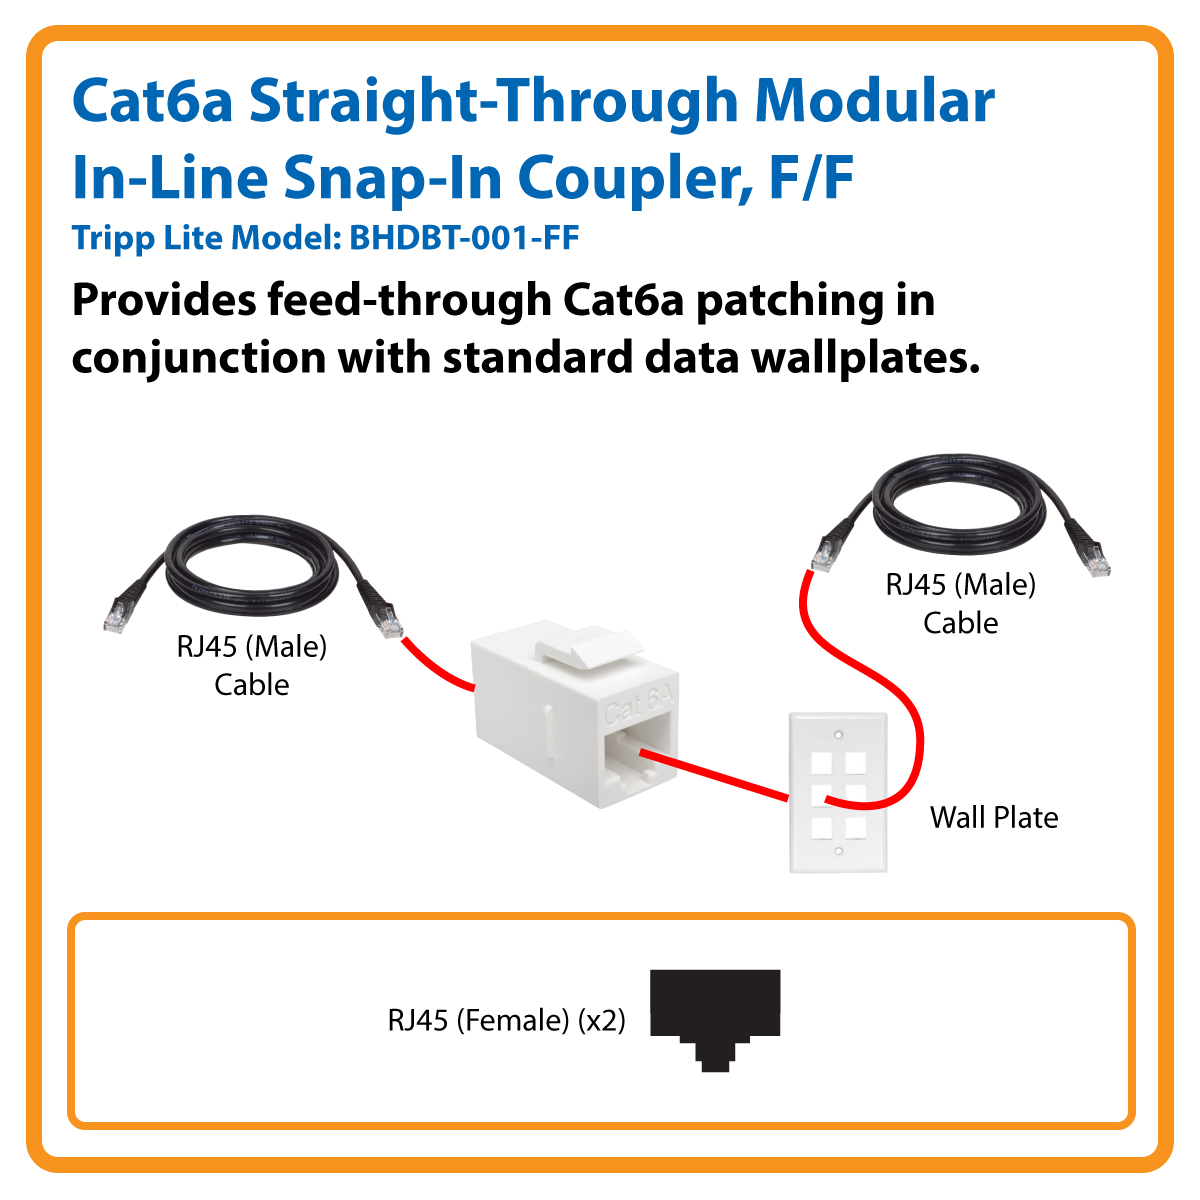 Tripp Lite Cat6a Straight Through Modular In Line Snap Coupler Wiring Diagram Rj45 Ff By Office Depot Officemax